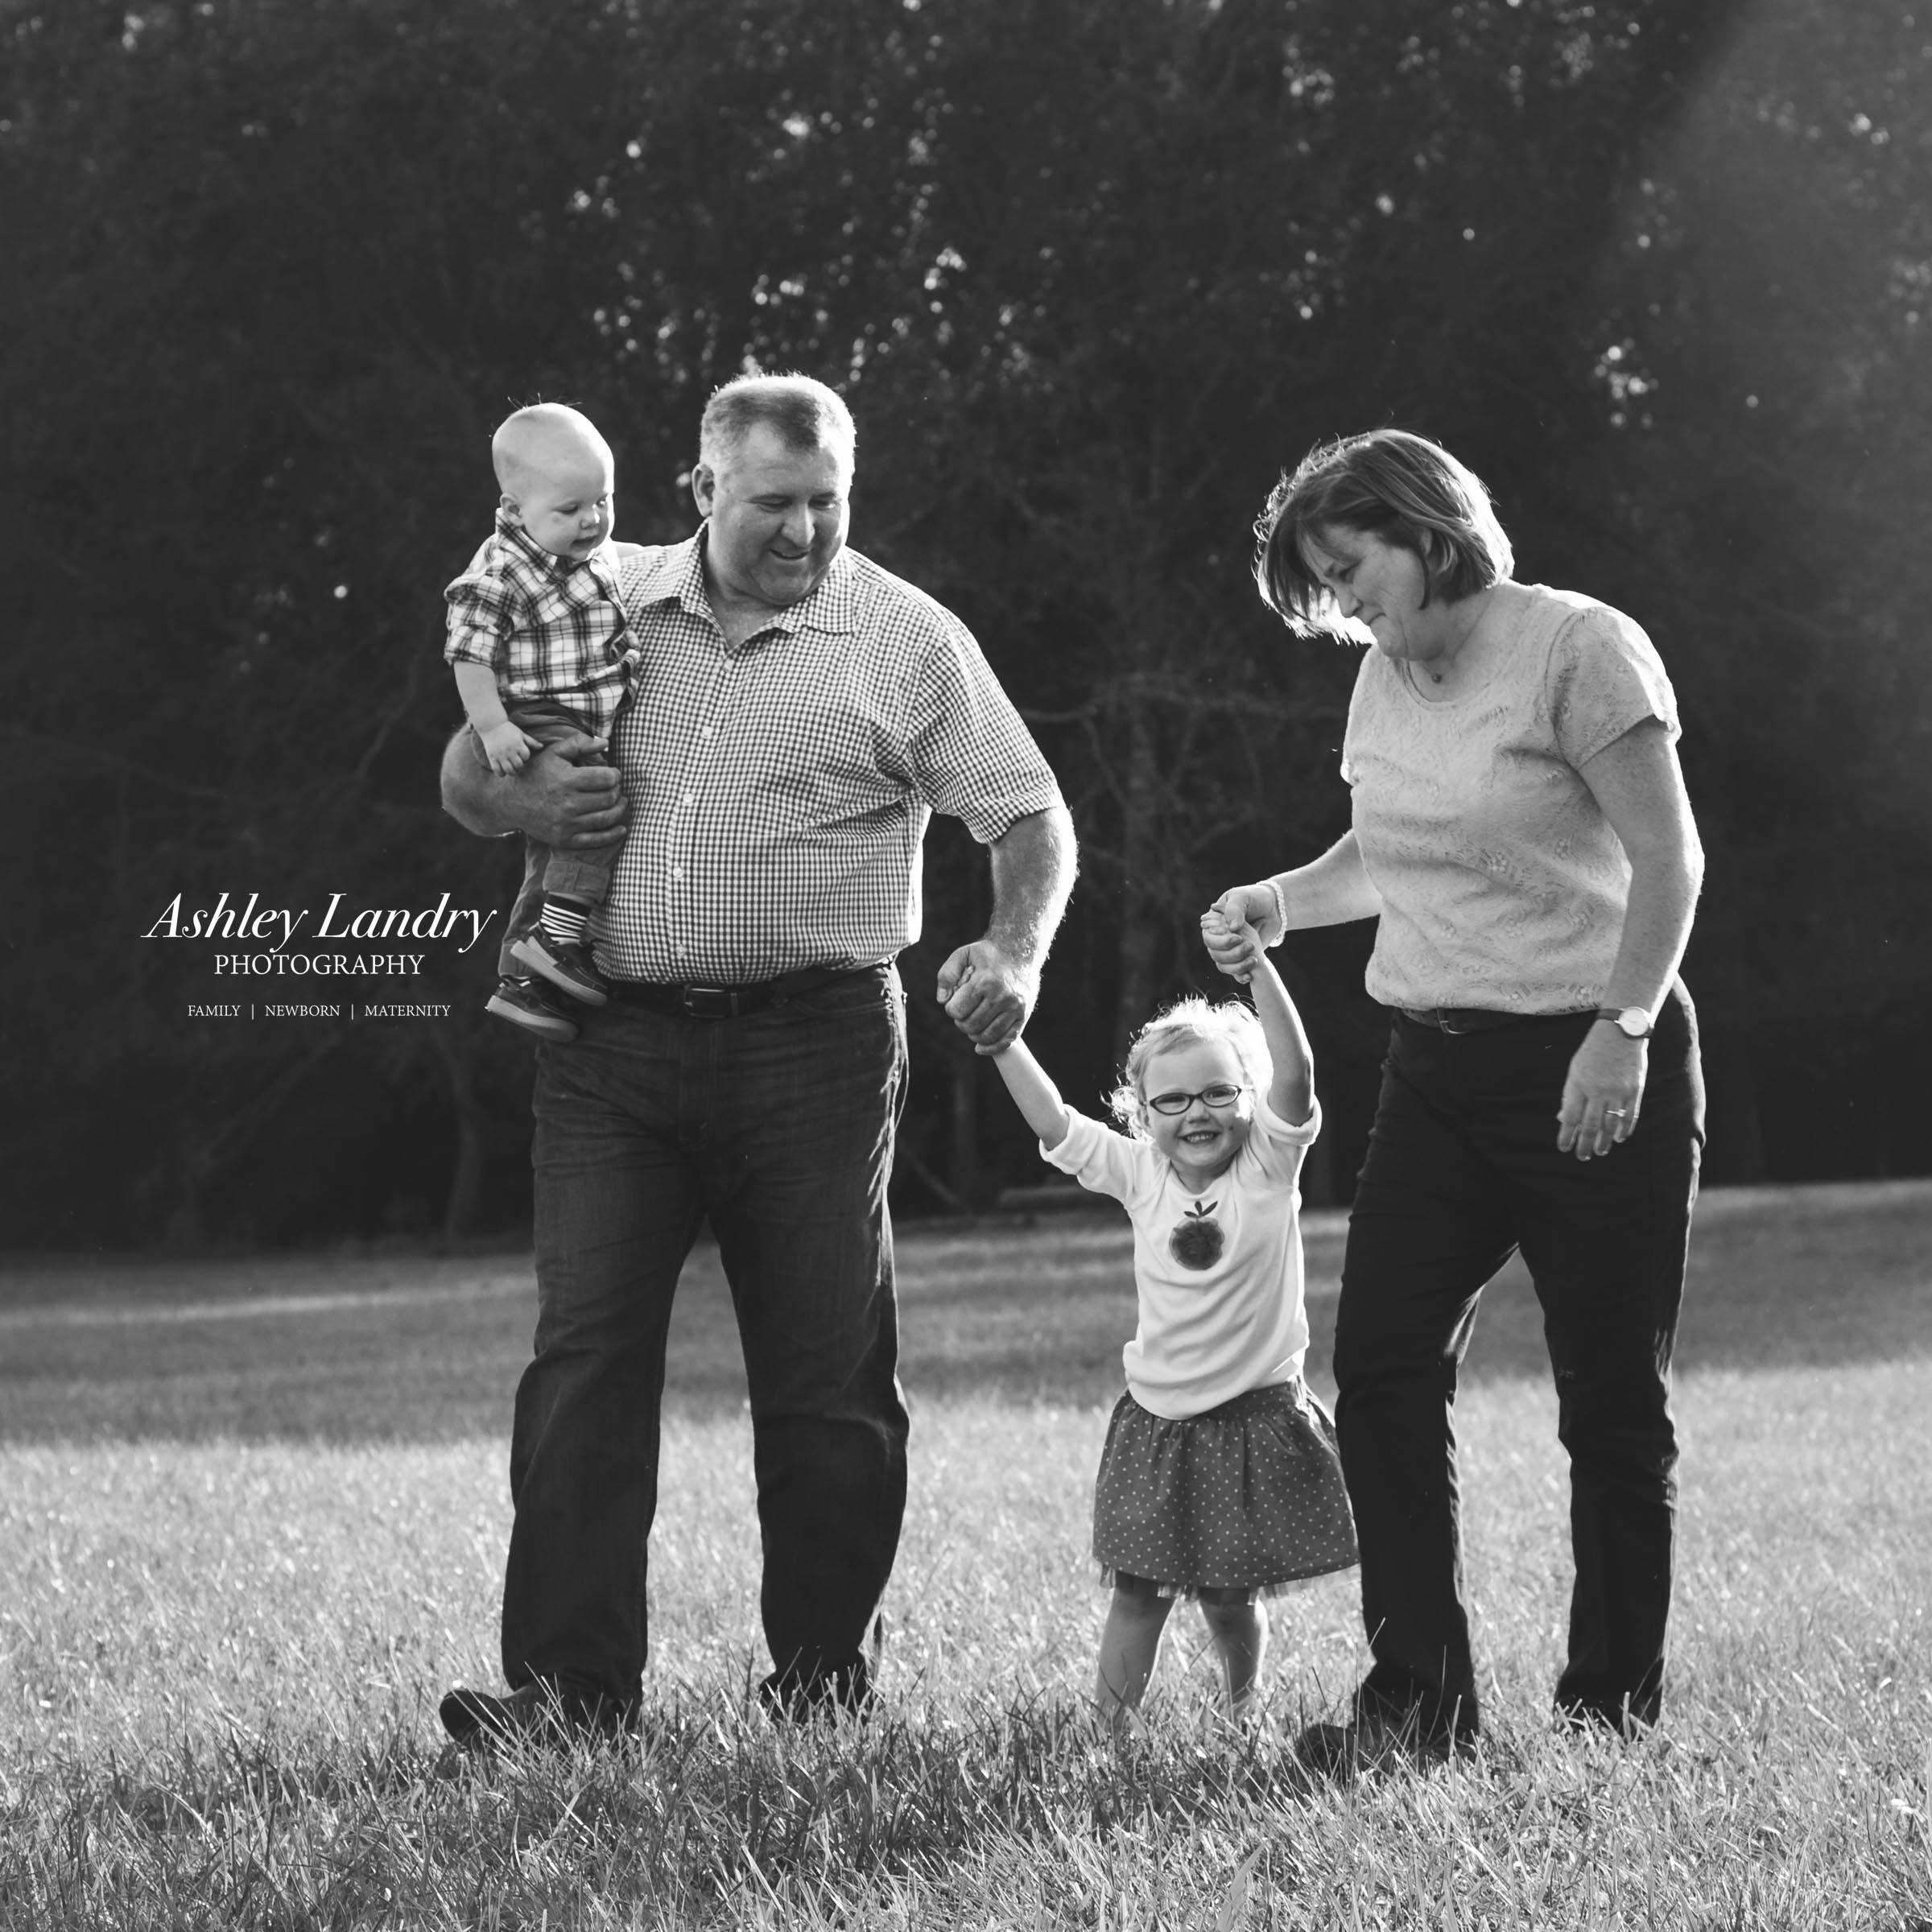 ashley-landry-photography-social-media-1